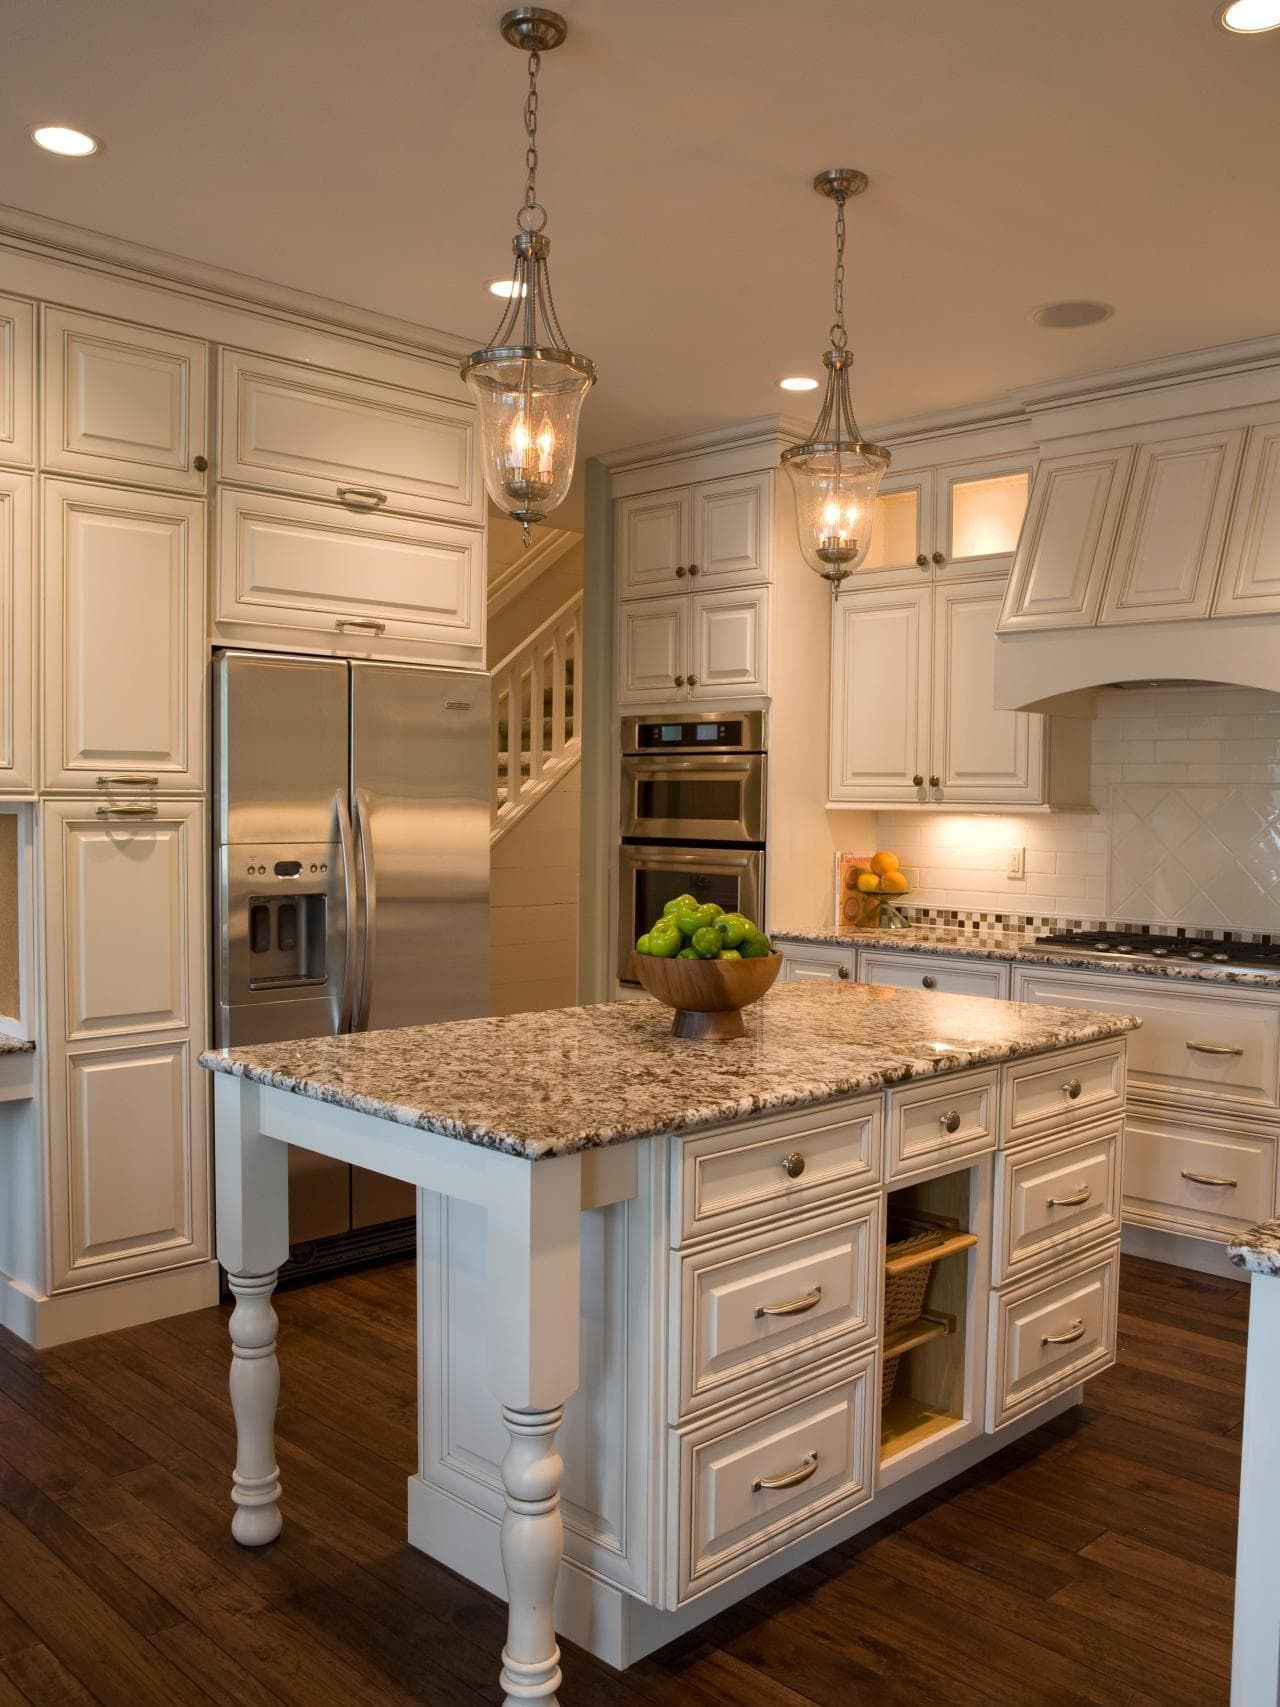 kitchen island lighting ideas best and clear lighting style kitchen island lighting kitchen on kitchen ideas with island id=63864